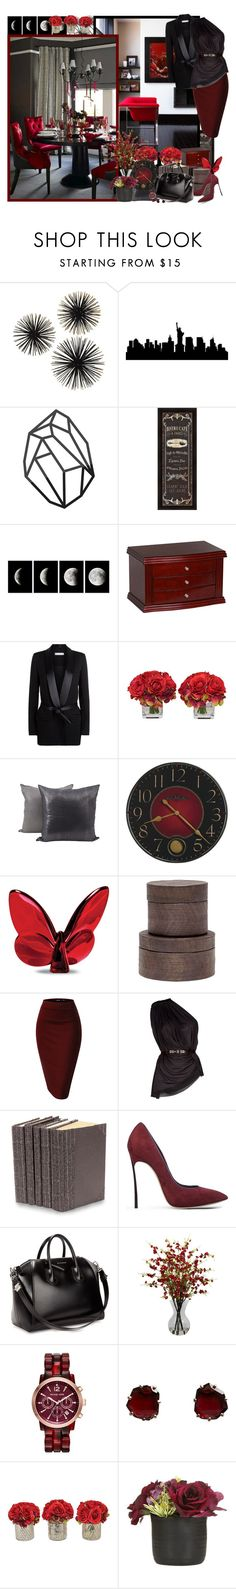 """Classic chic..."" by asia-12 ❤ liked on Polyvore featuring IRO, Jayson Home, Baccarat, Pigeon & Poodle, La Petite S*****, Decorative Leather Books, Casadei, Givenchy, Nearly Natural and Michael Kors"